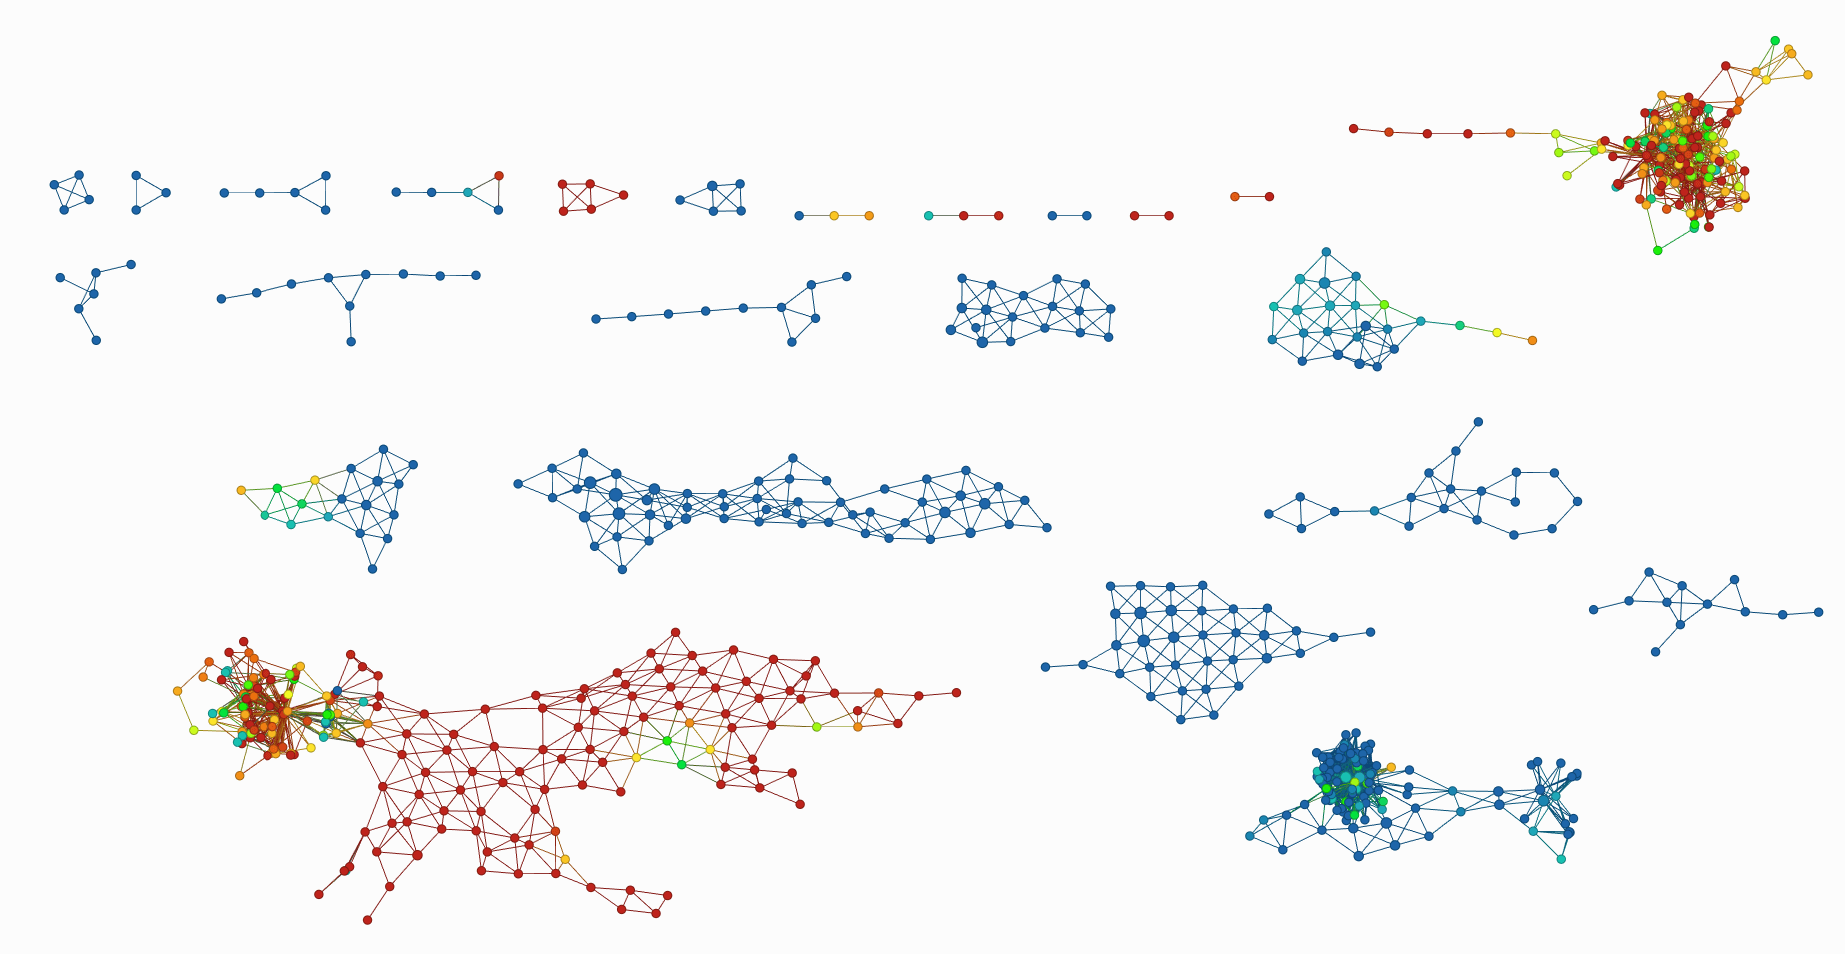 Notes and Thoughts on Clustering